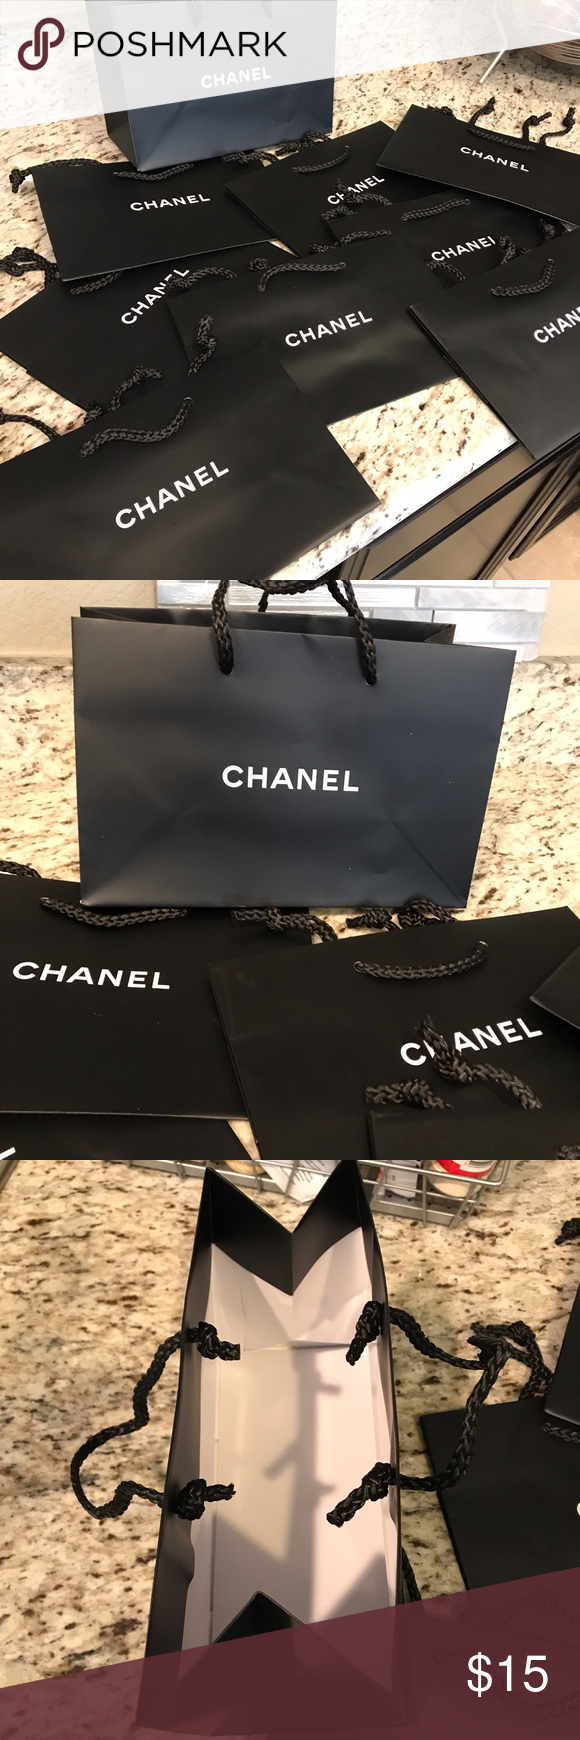 """Set of 9 CHANEL gift bags Brand new authentic black CHANEL gift bags. 6.5""""x9.5"""". I have 9 left. CHANEL Other"""